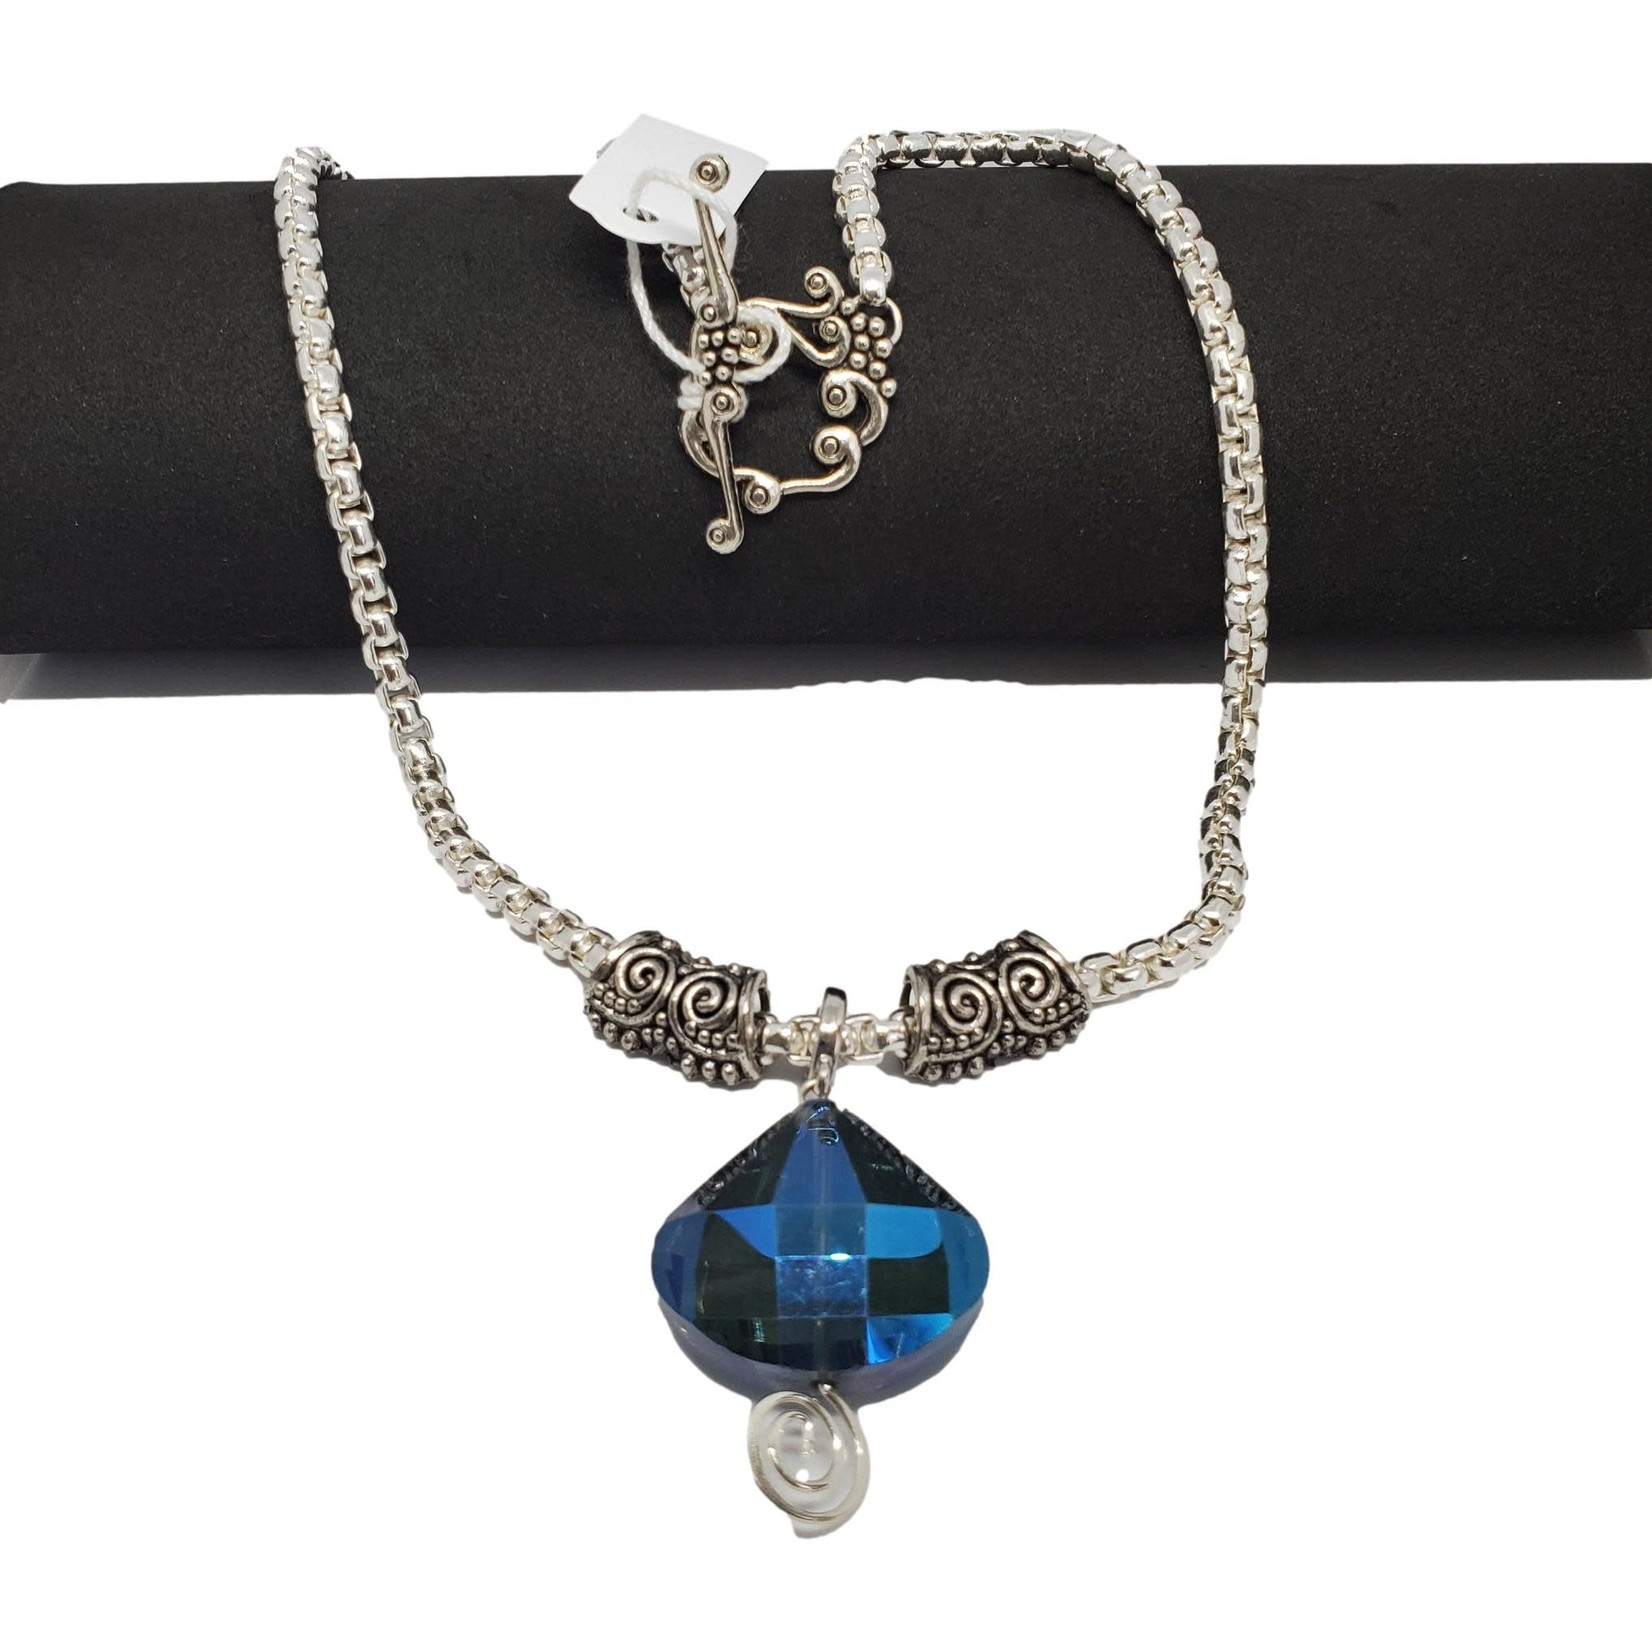 Jewellery by Deborah Young-Groves Silver-toned Chunky Necklace with Blue Stone Drop